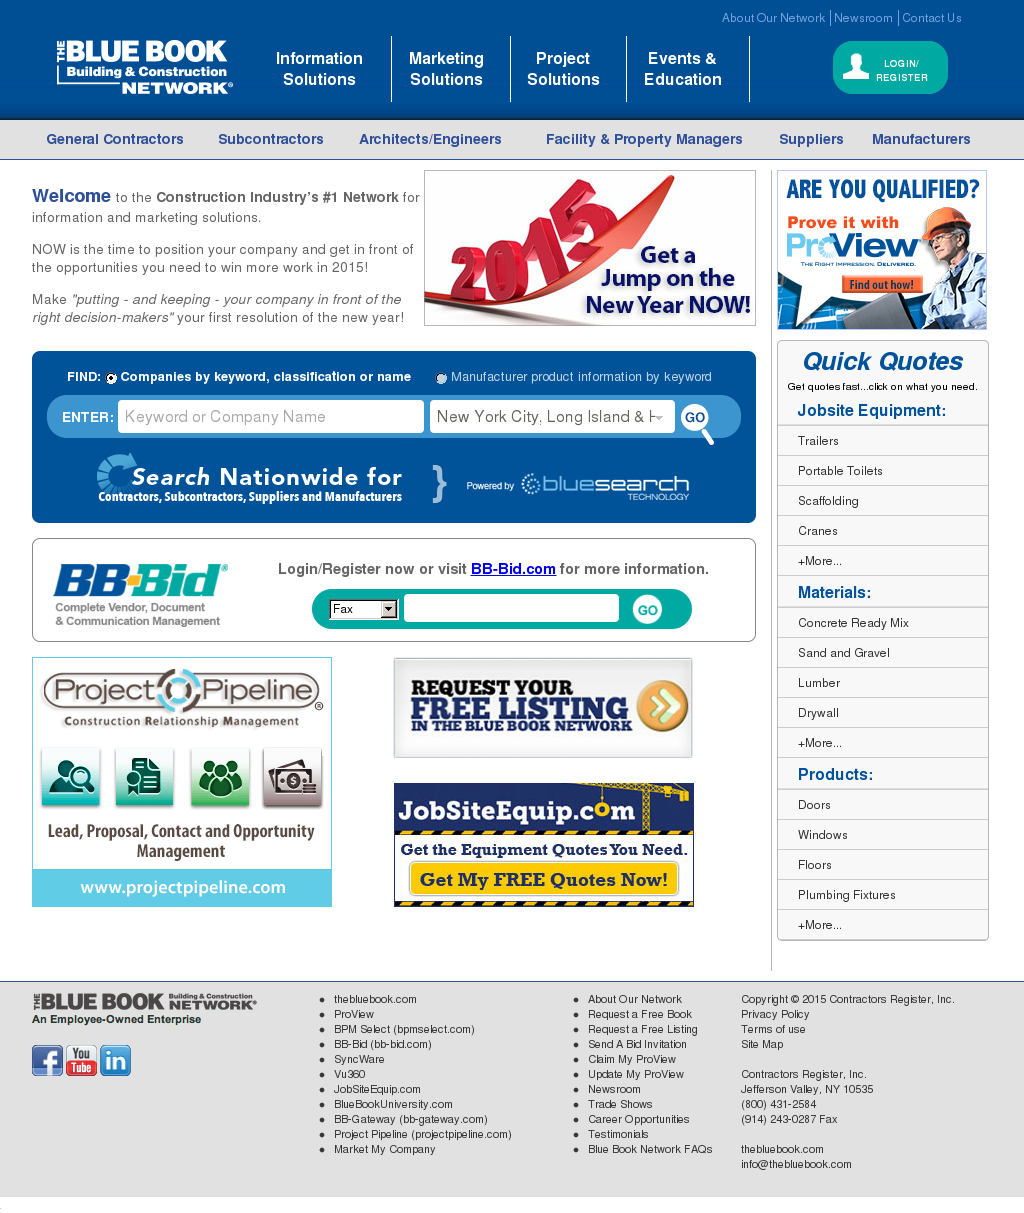 Construction Blue Book >> The Blue Book Building And Construction Network Competitors